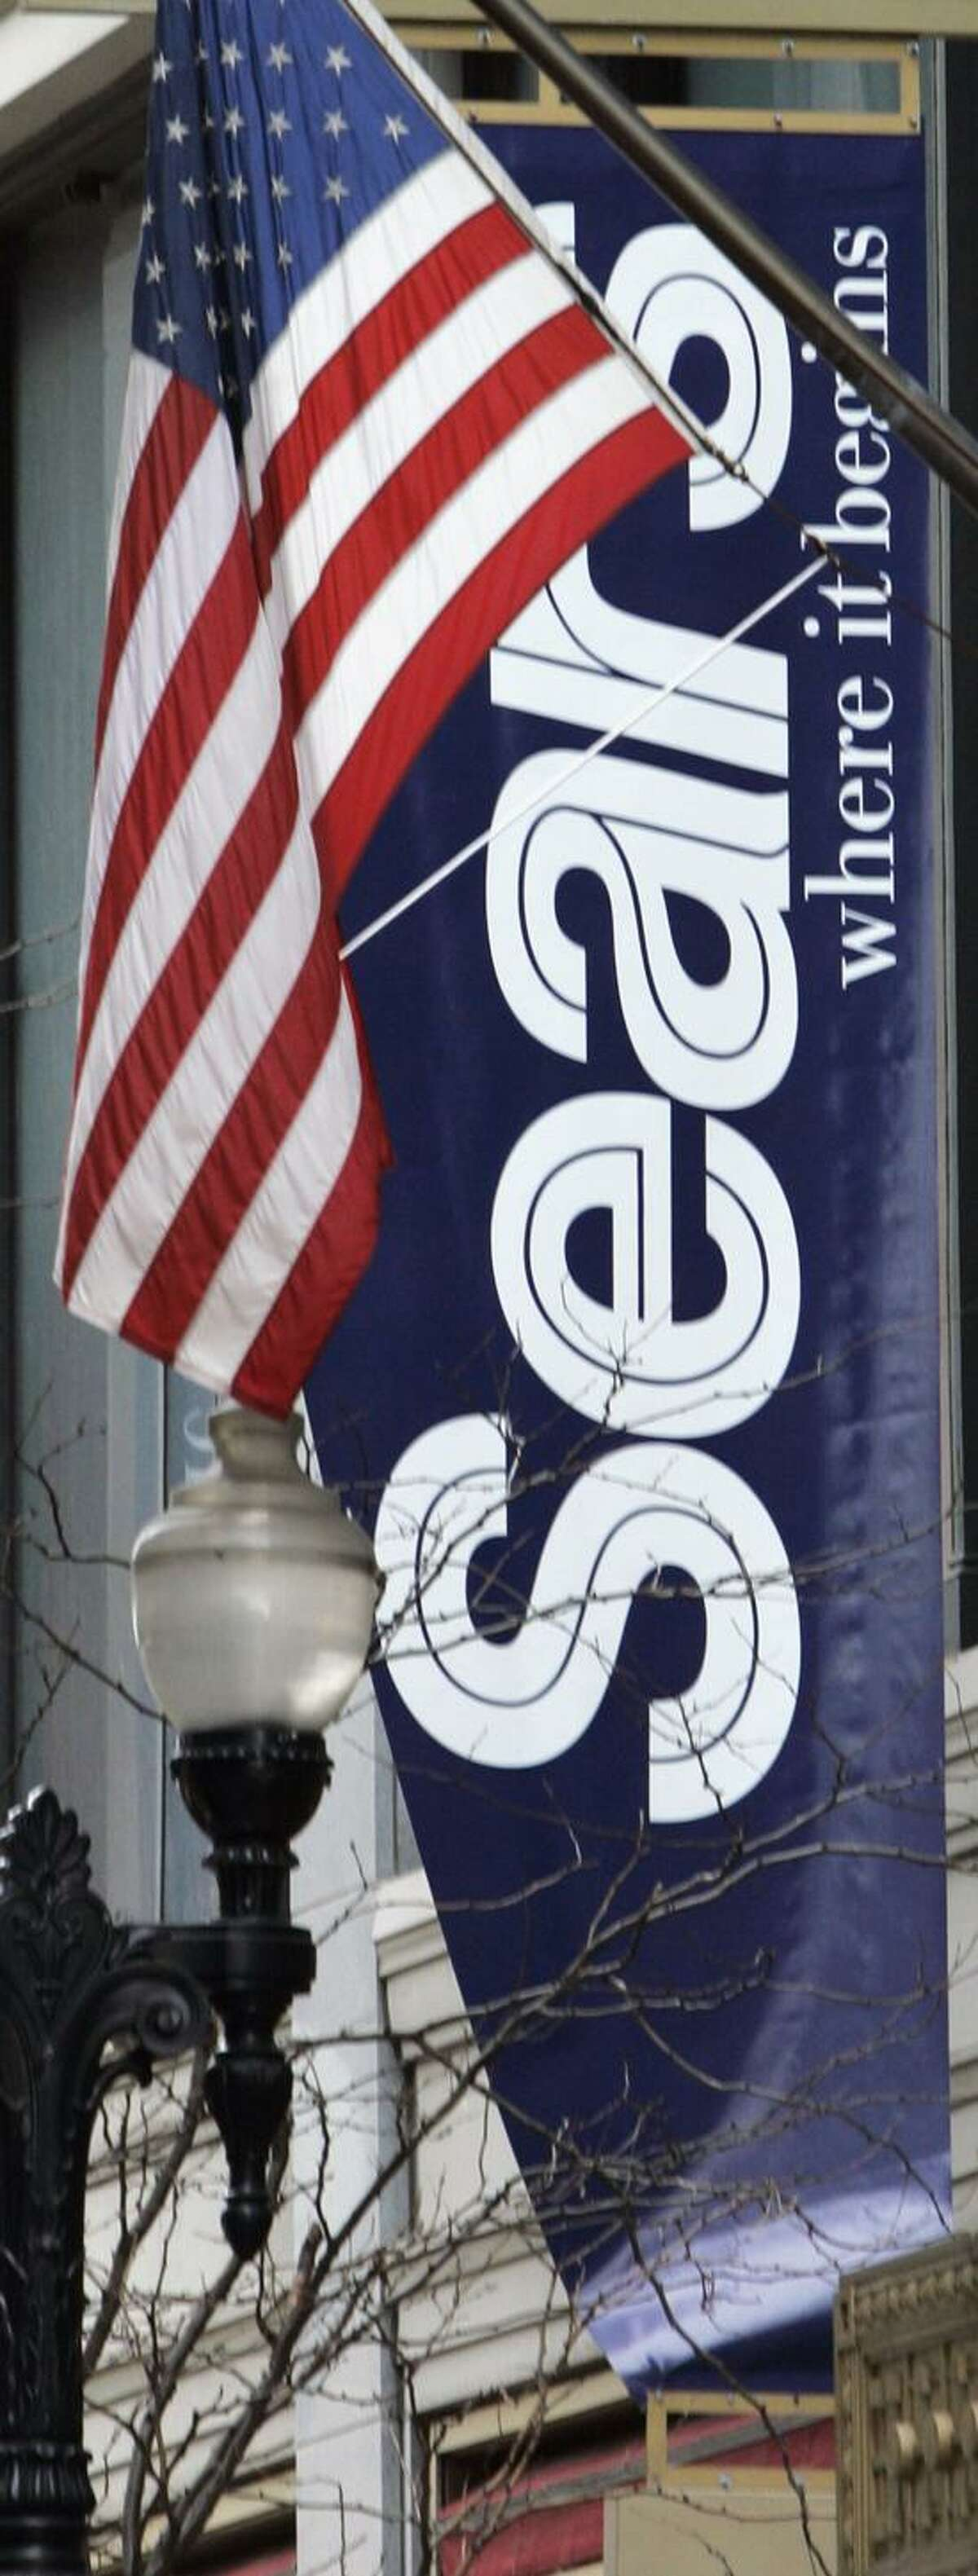 A banner is seen on the exterior of the Sears department store in downtown Chicago. Sears Holdings Corp. said Tuesday it plans to close 100 to 120 of its Sears and Kmart stores as its holiday sales disappointed and it looks to reduce costs.(Associated Press)